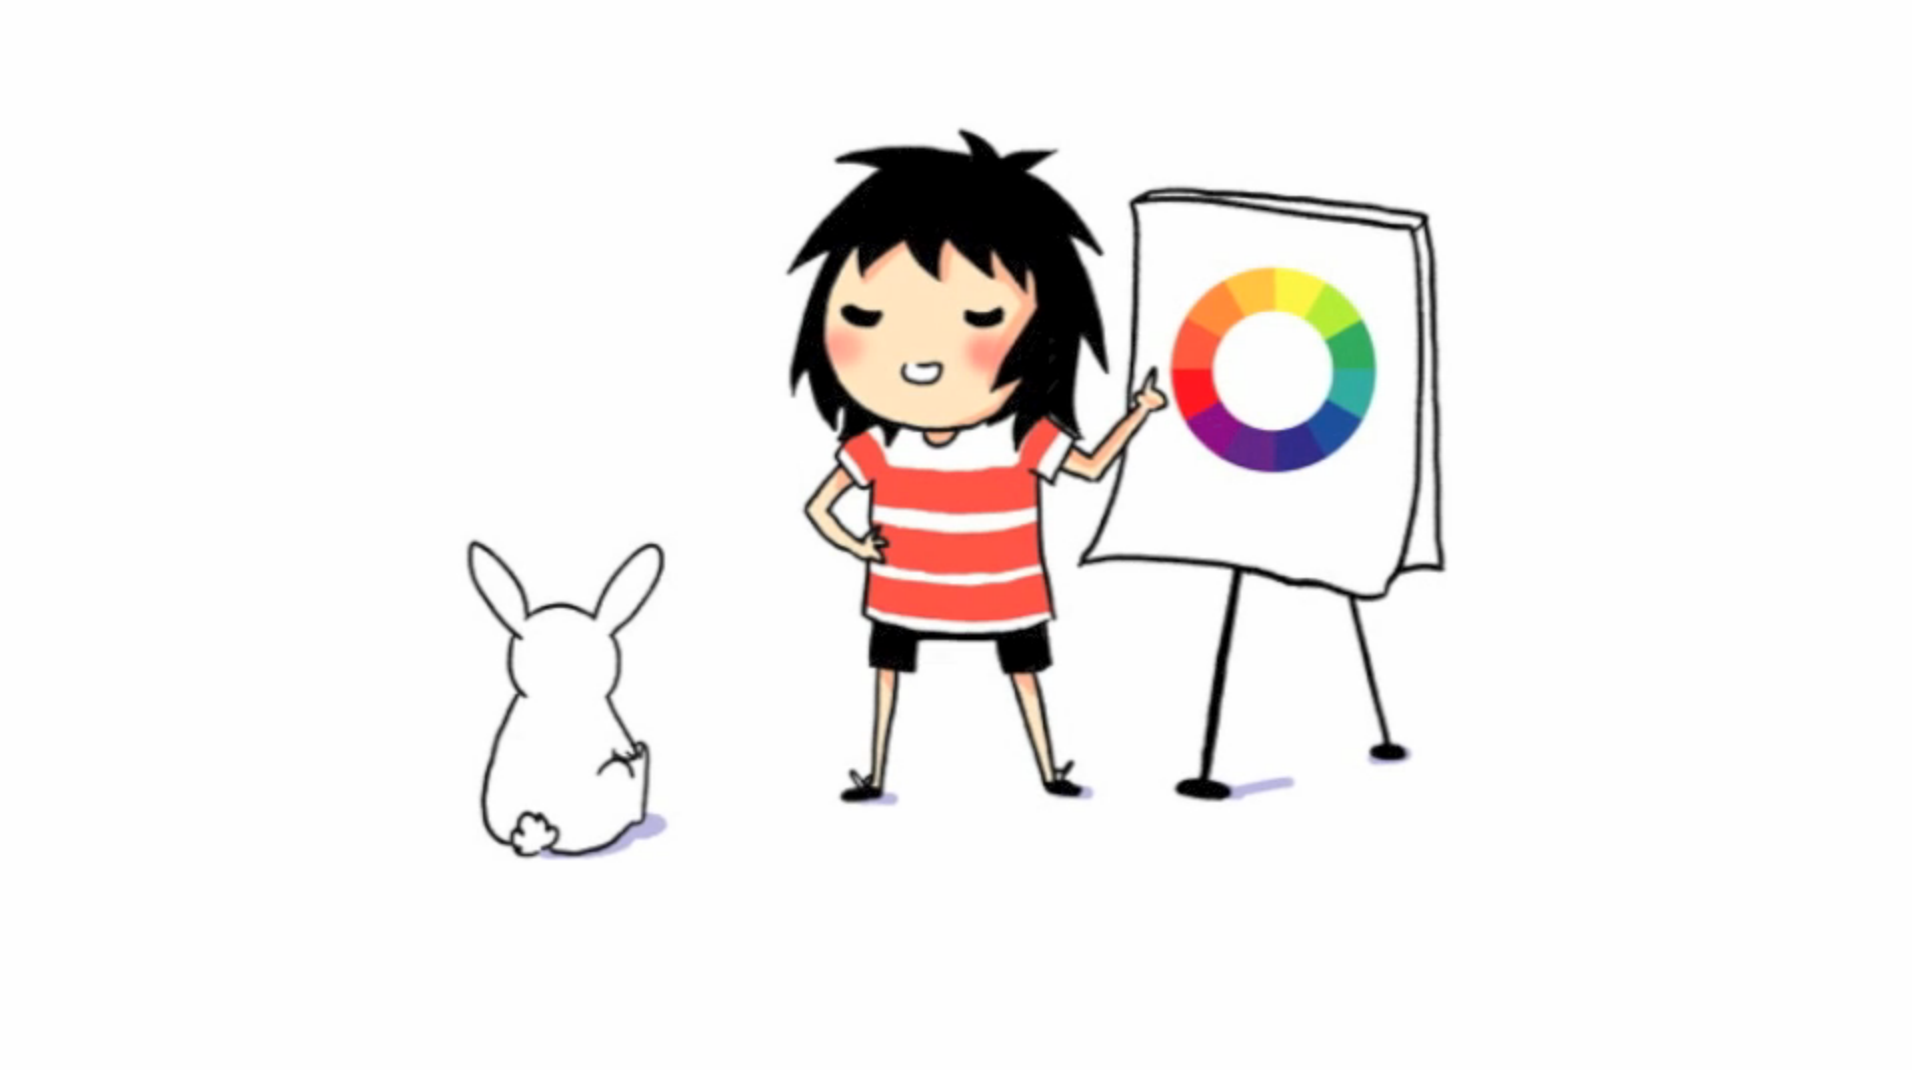 coloring webcomics from line art to digital color sarah